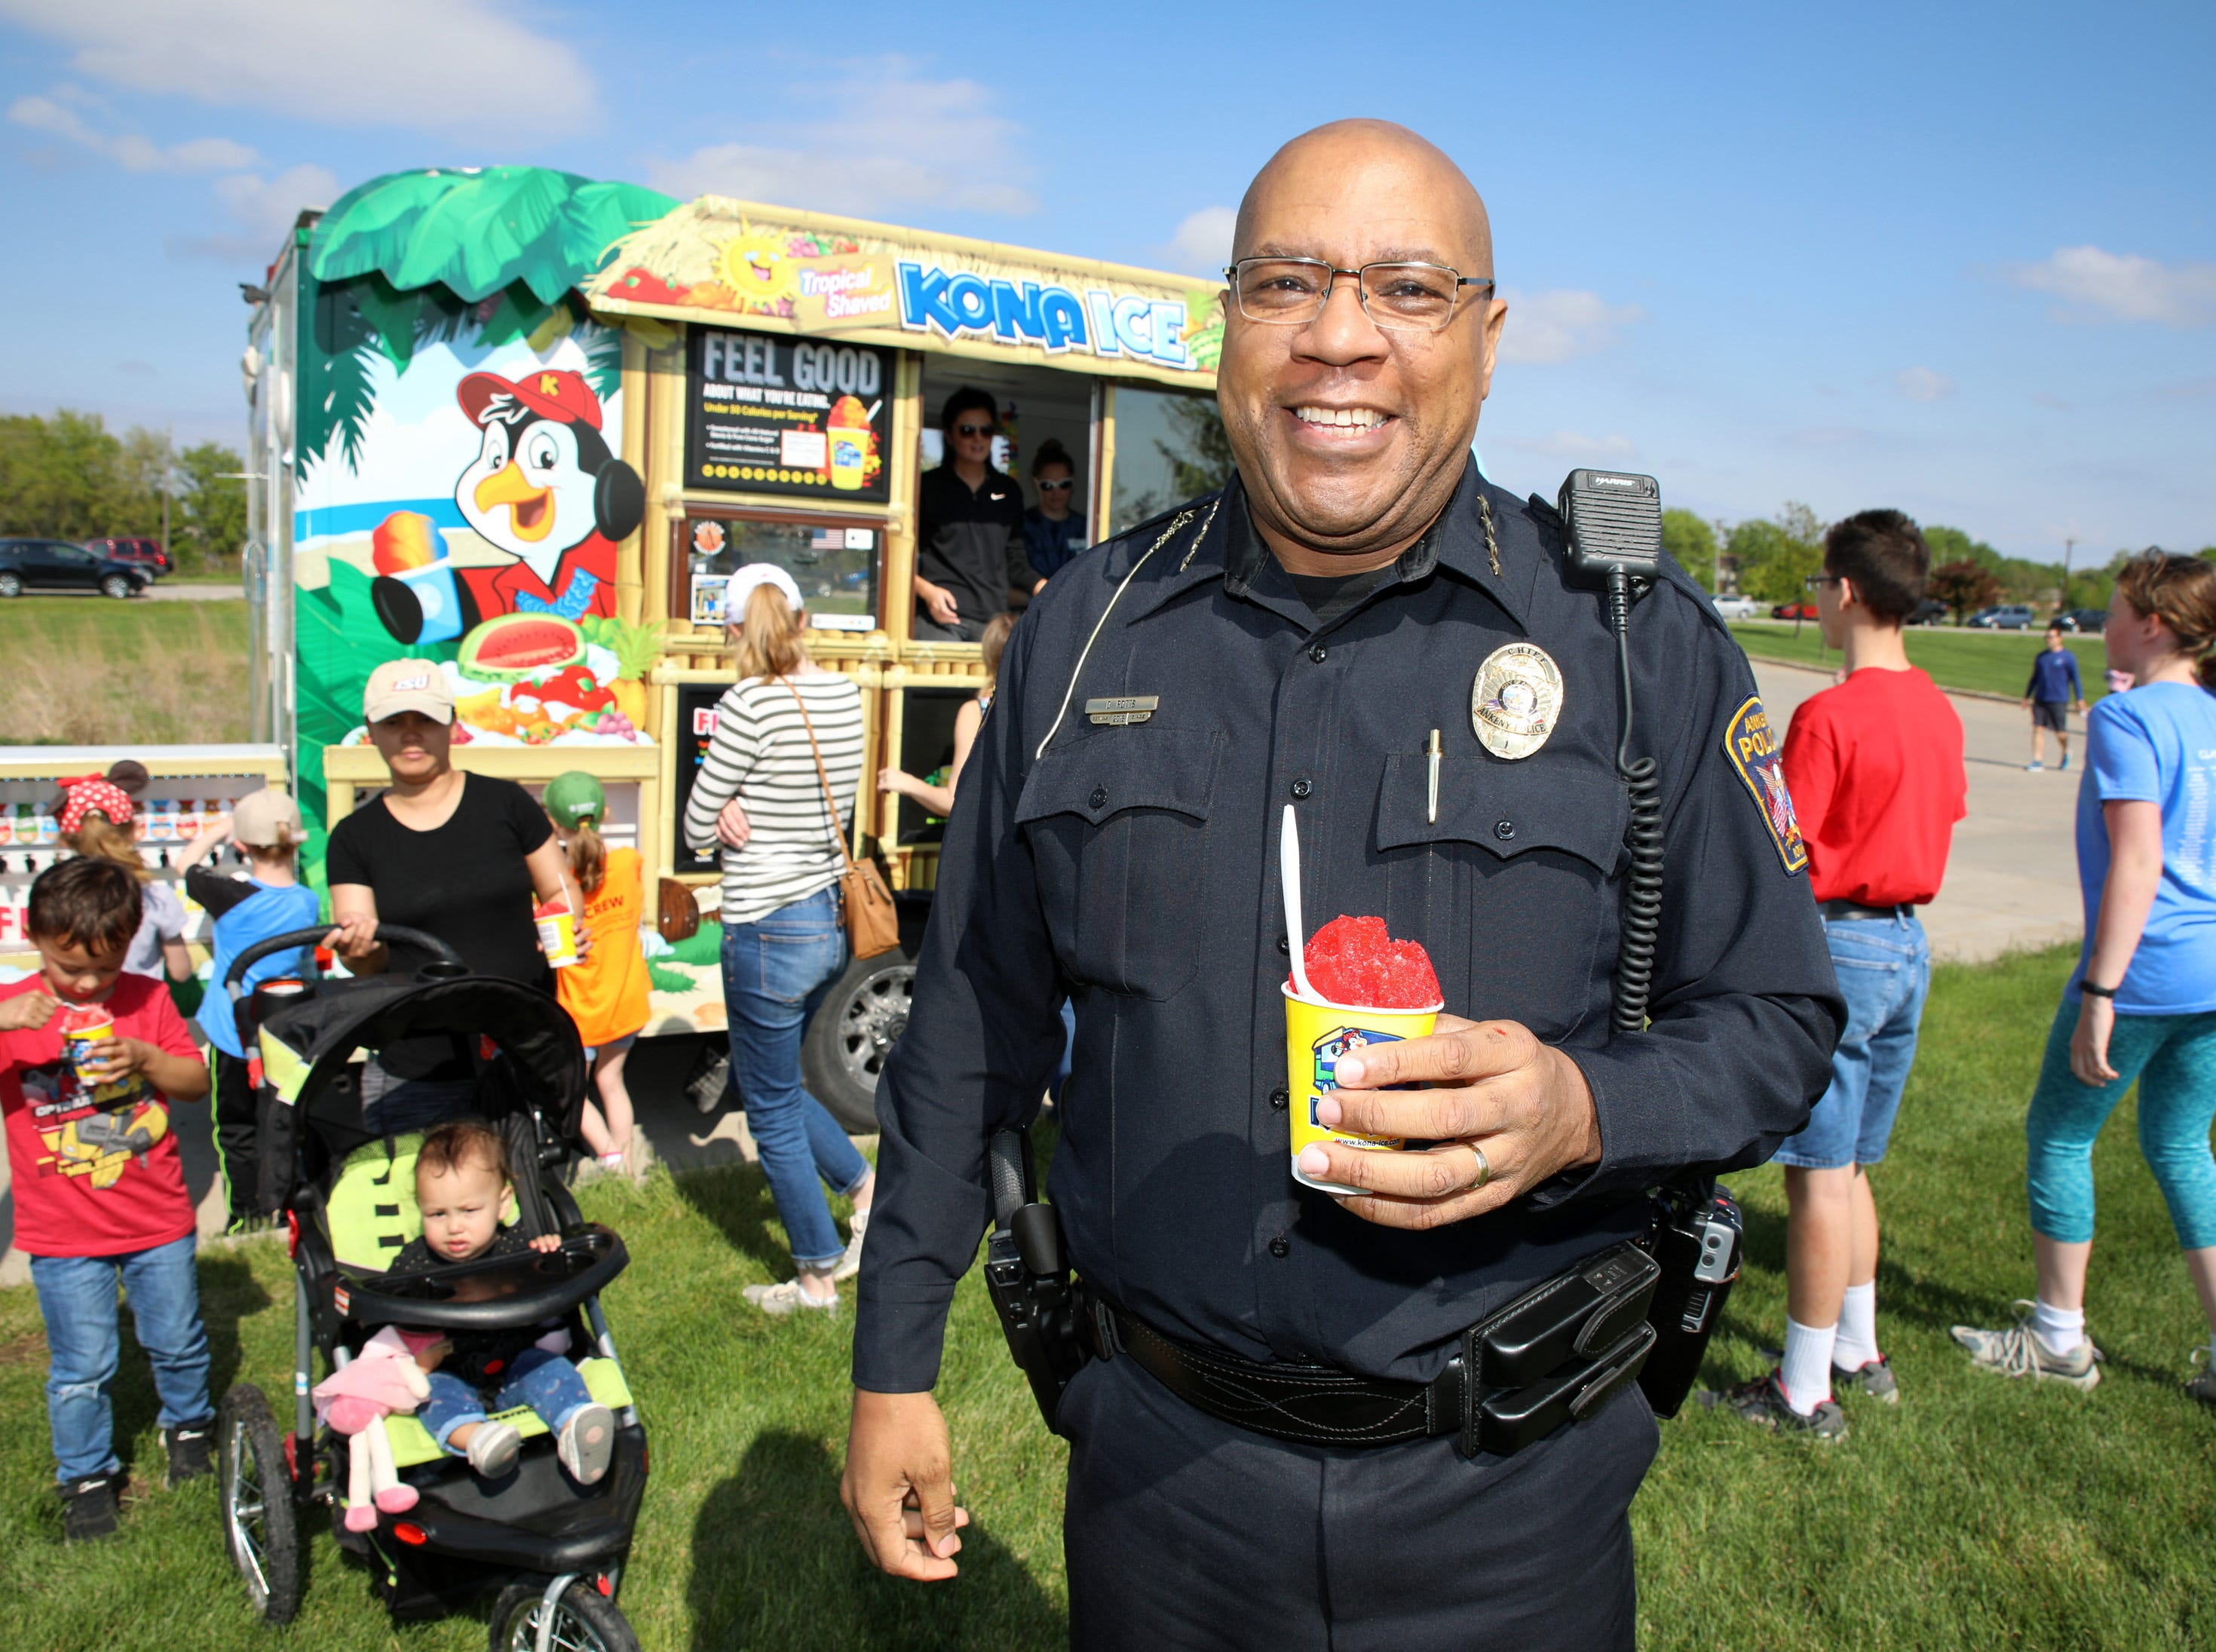 Ankeny Police Chief Darius Potts pulls over at the Kono Ice truck during the Ankeny Police Week Community Picnic on Tuesday, May 14, 2019 at the Ankeny Police Headquarters located at 411 SW Ordnance Road. The event featured a tour of the police station, magician Jonathon May, free Chick Fil-A sandwiches for the first 1,000 guests, free Kona Ice, temporary tattoos, and a great opportunity to meet the officers who protect and serve the city of Ankeny.